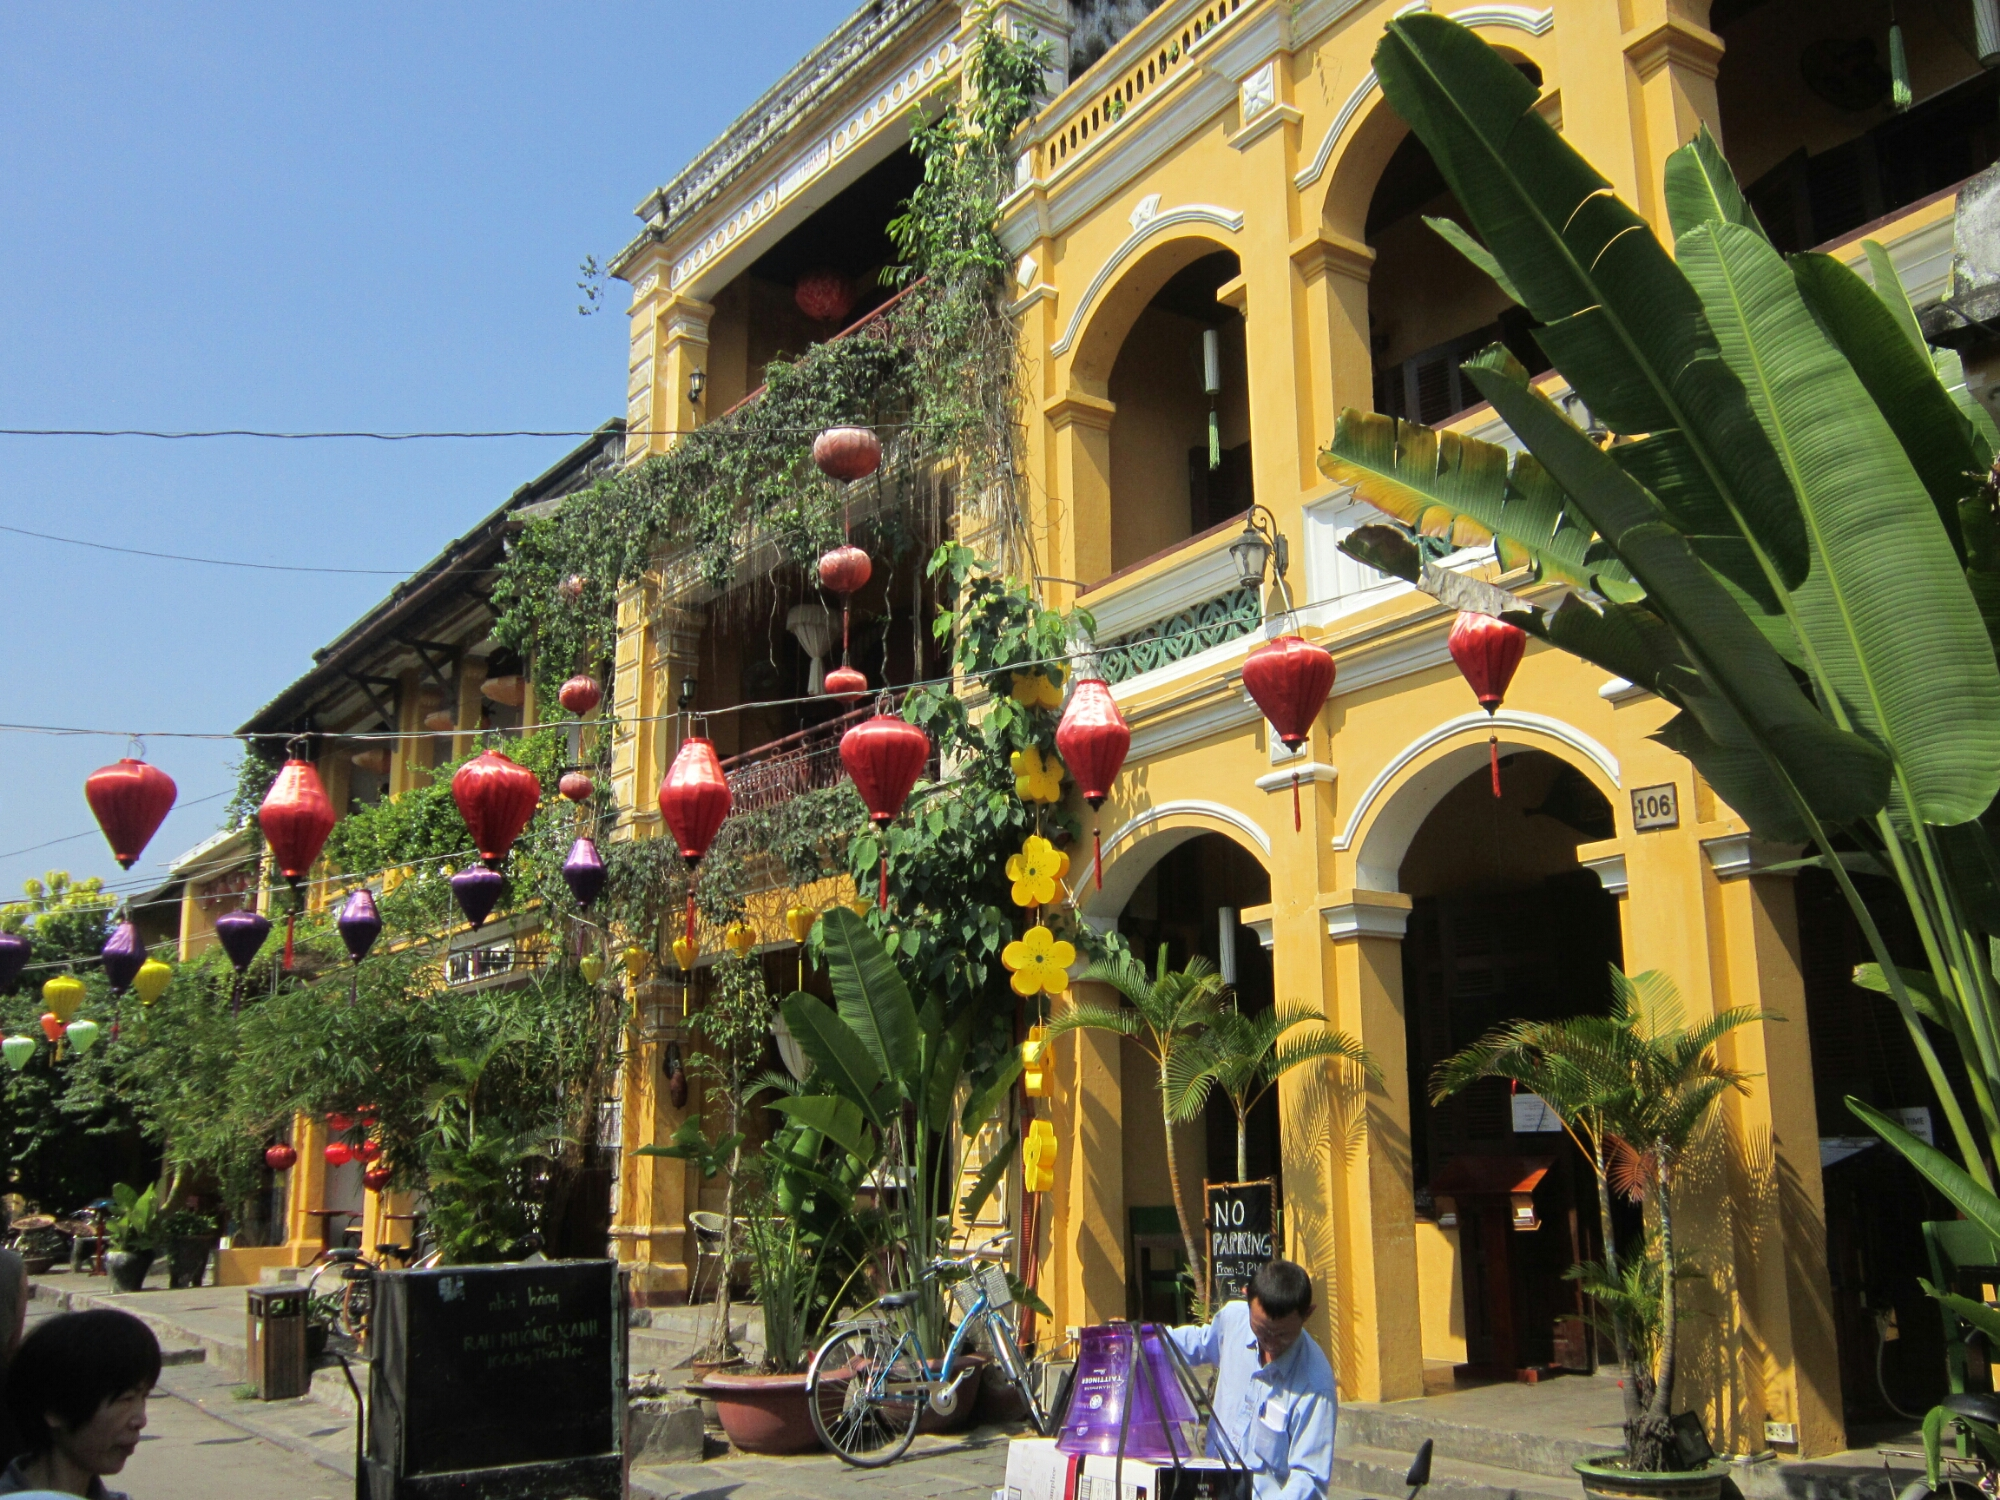 Pretty buildings with decorations in old town Hoi An, Vietnam